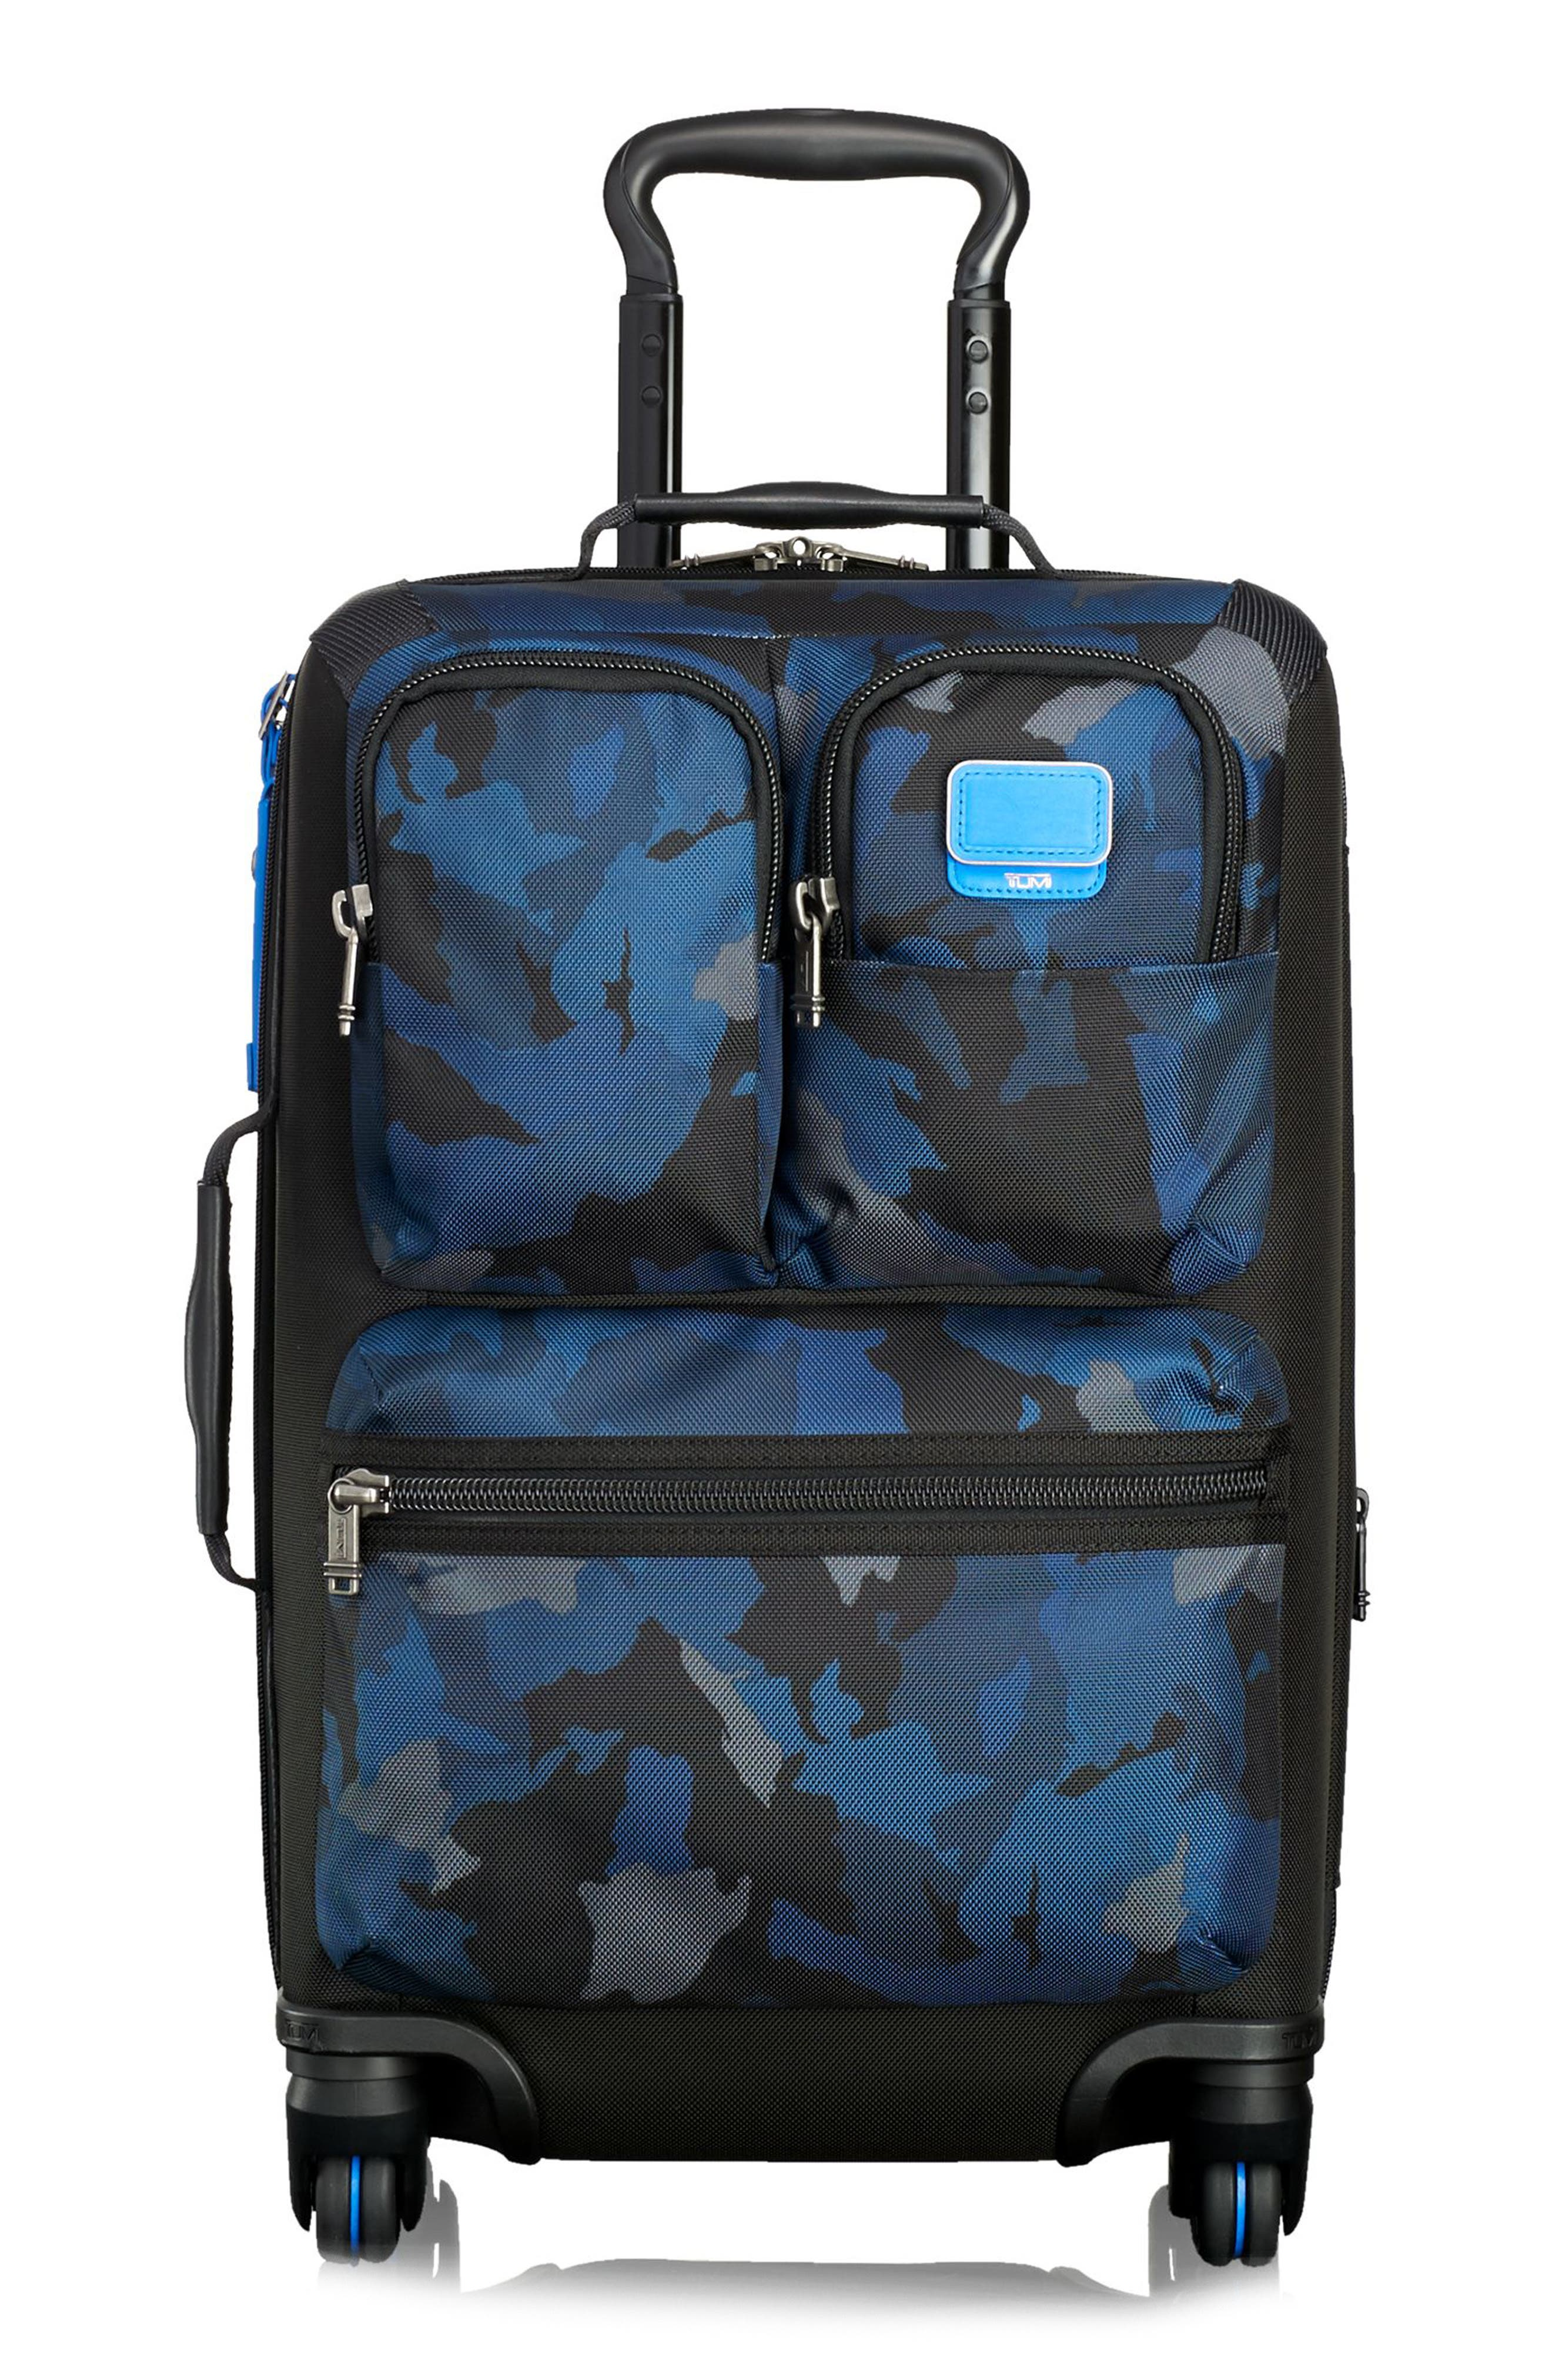 Tumi Alpha Bravo Kirtland 22 Inch Expandable Continental Wheeled Carry-On